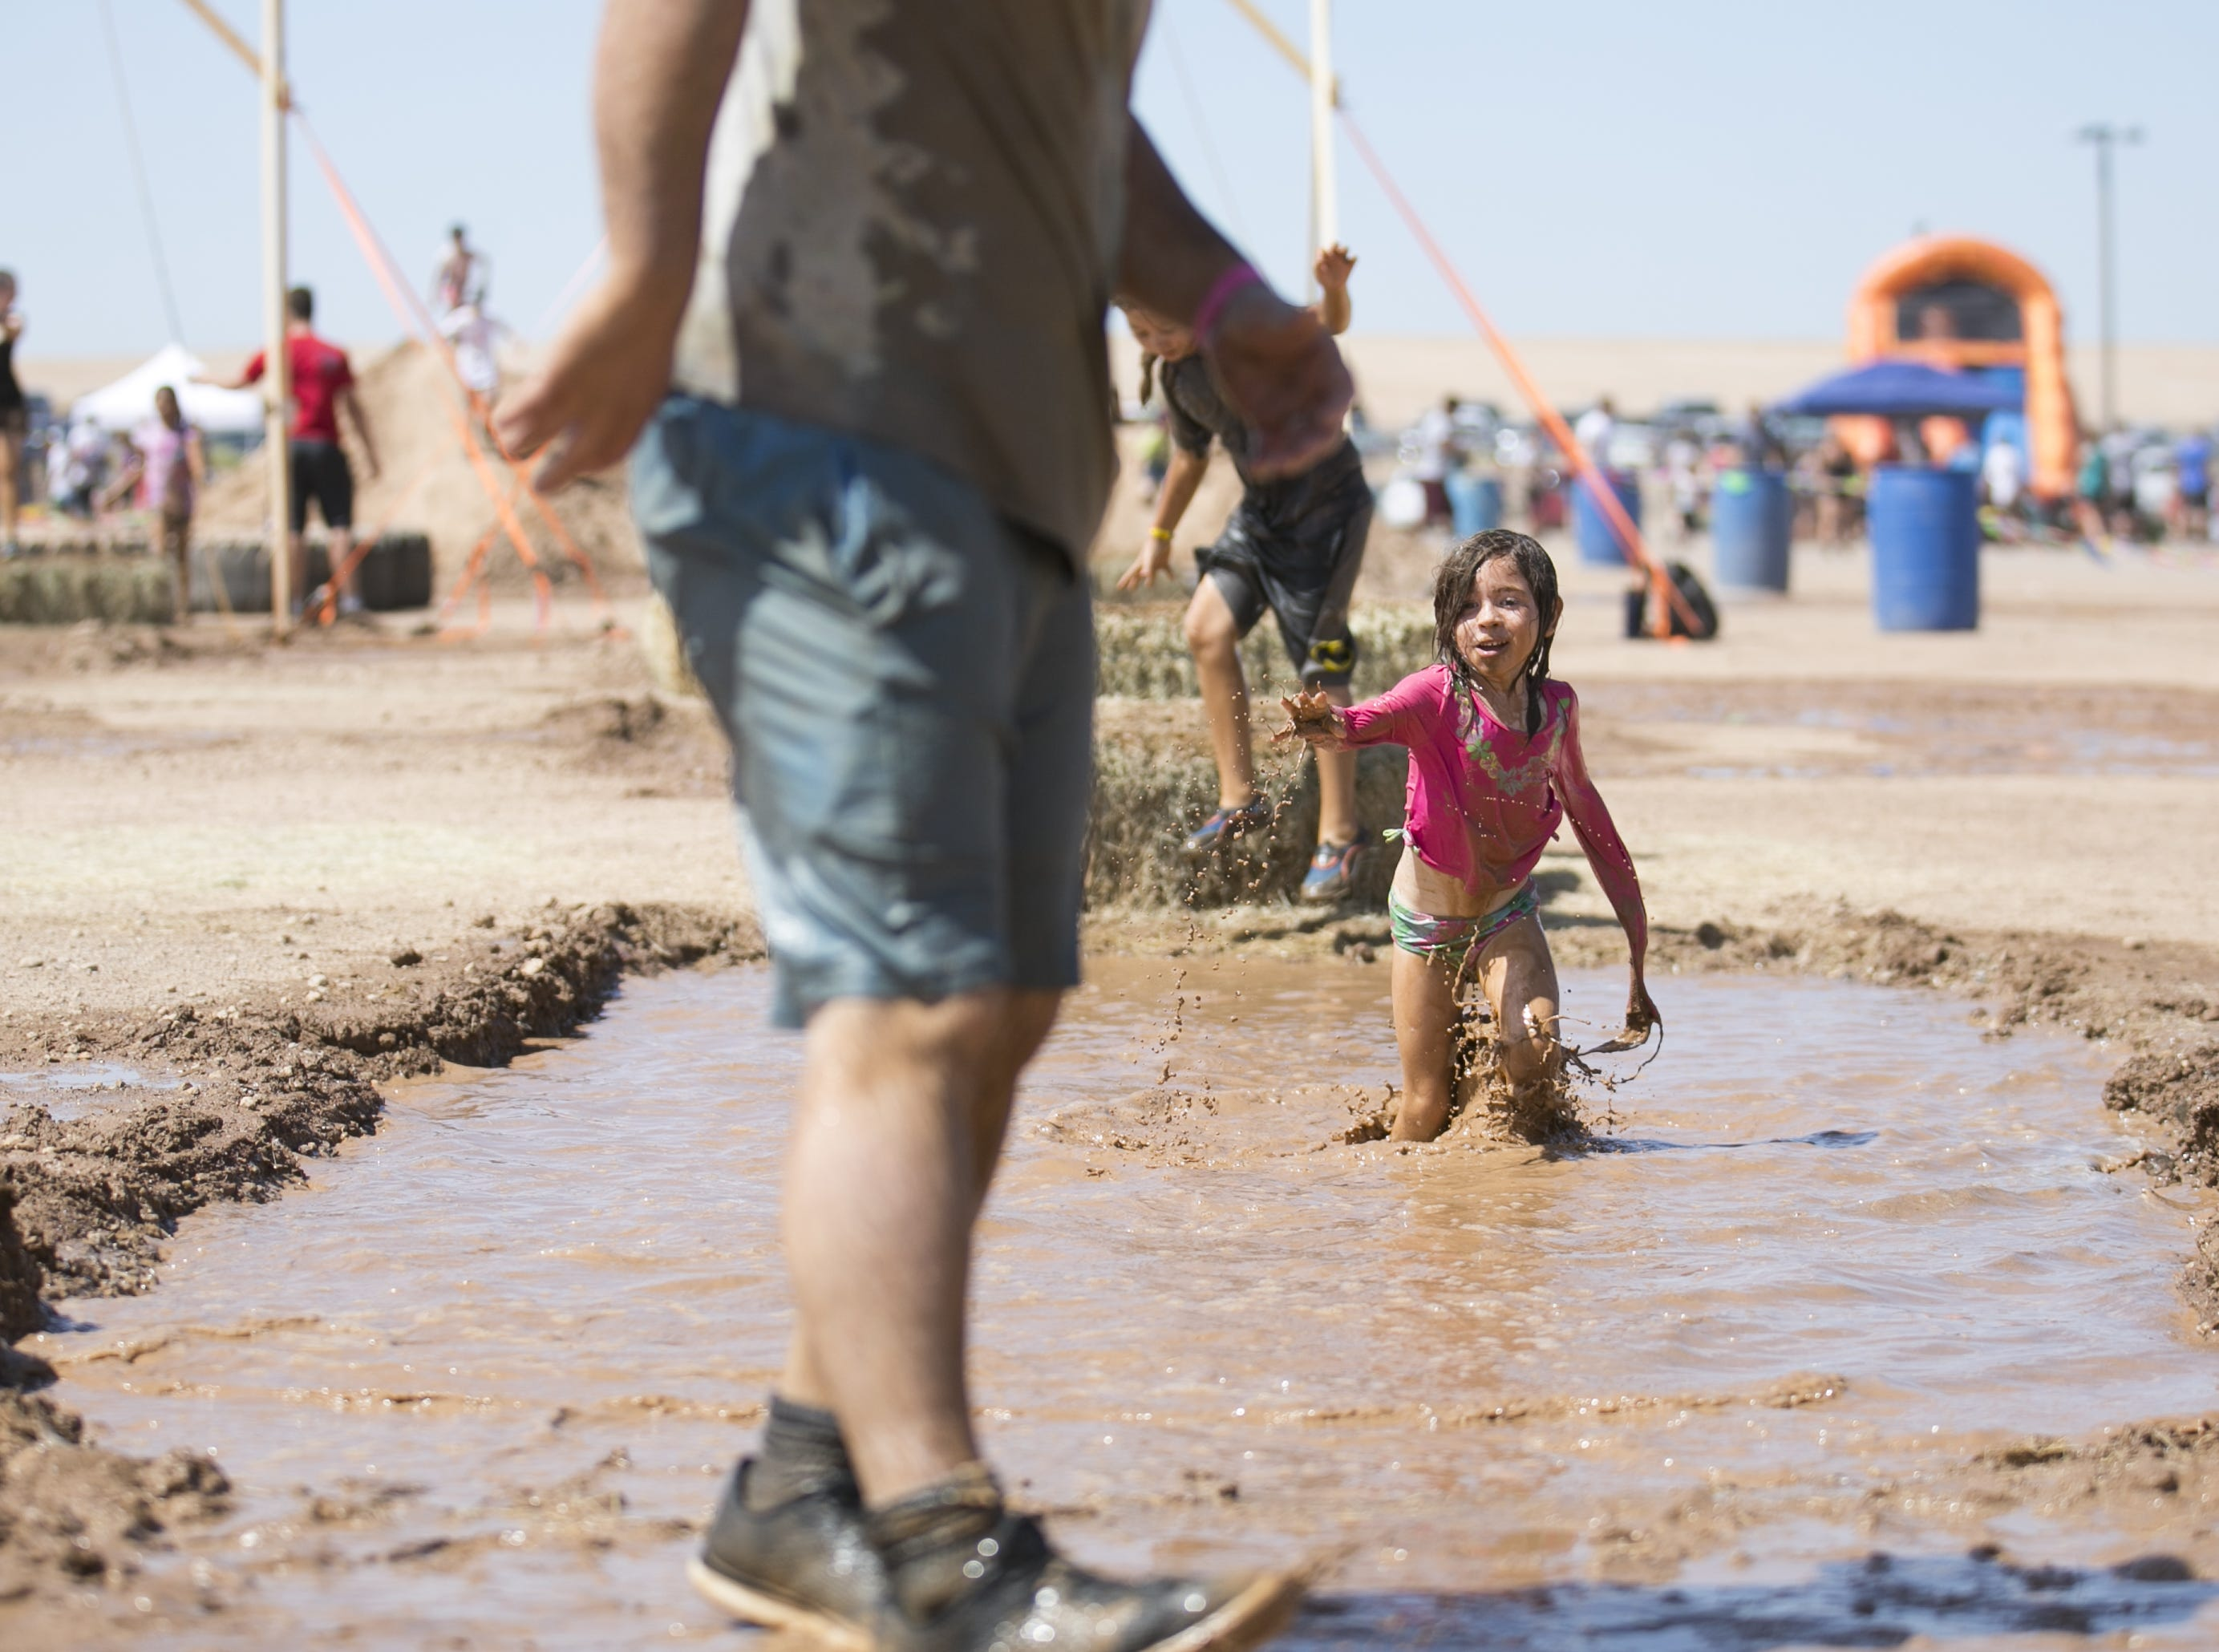 6-year-old Drusi Wallace (right) chases her dad Andrew Wallace (left) through the mud at the third annual Messy Fest in Queen Creek on Saturday, Sept. 15, 2018.